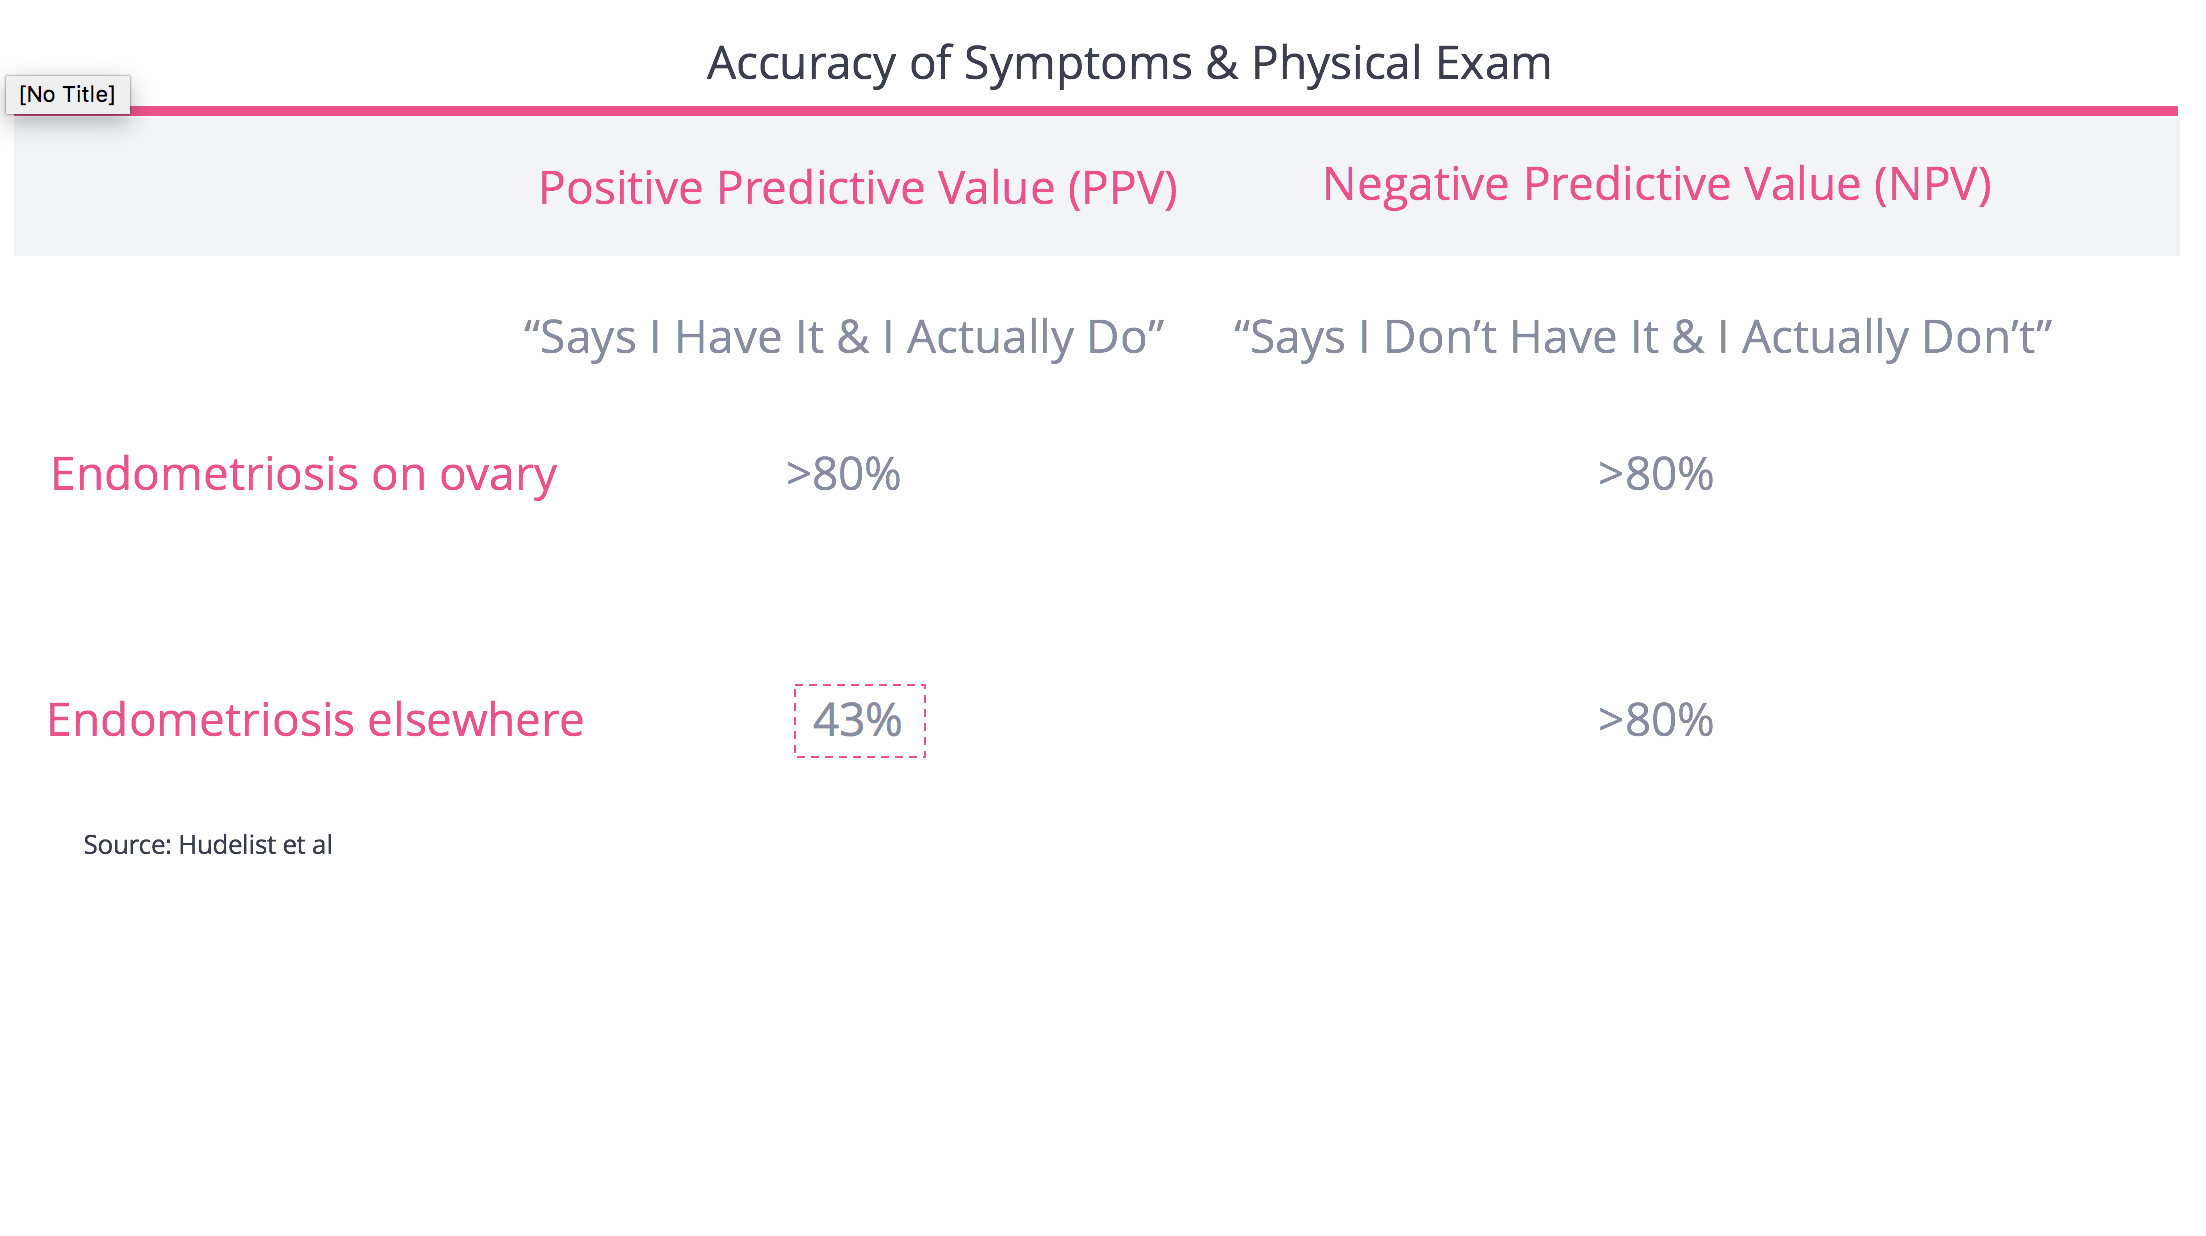 Accuracy of Diagnosing Using Symptoms & Physical Exam